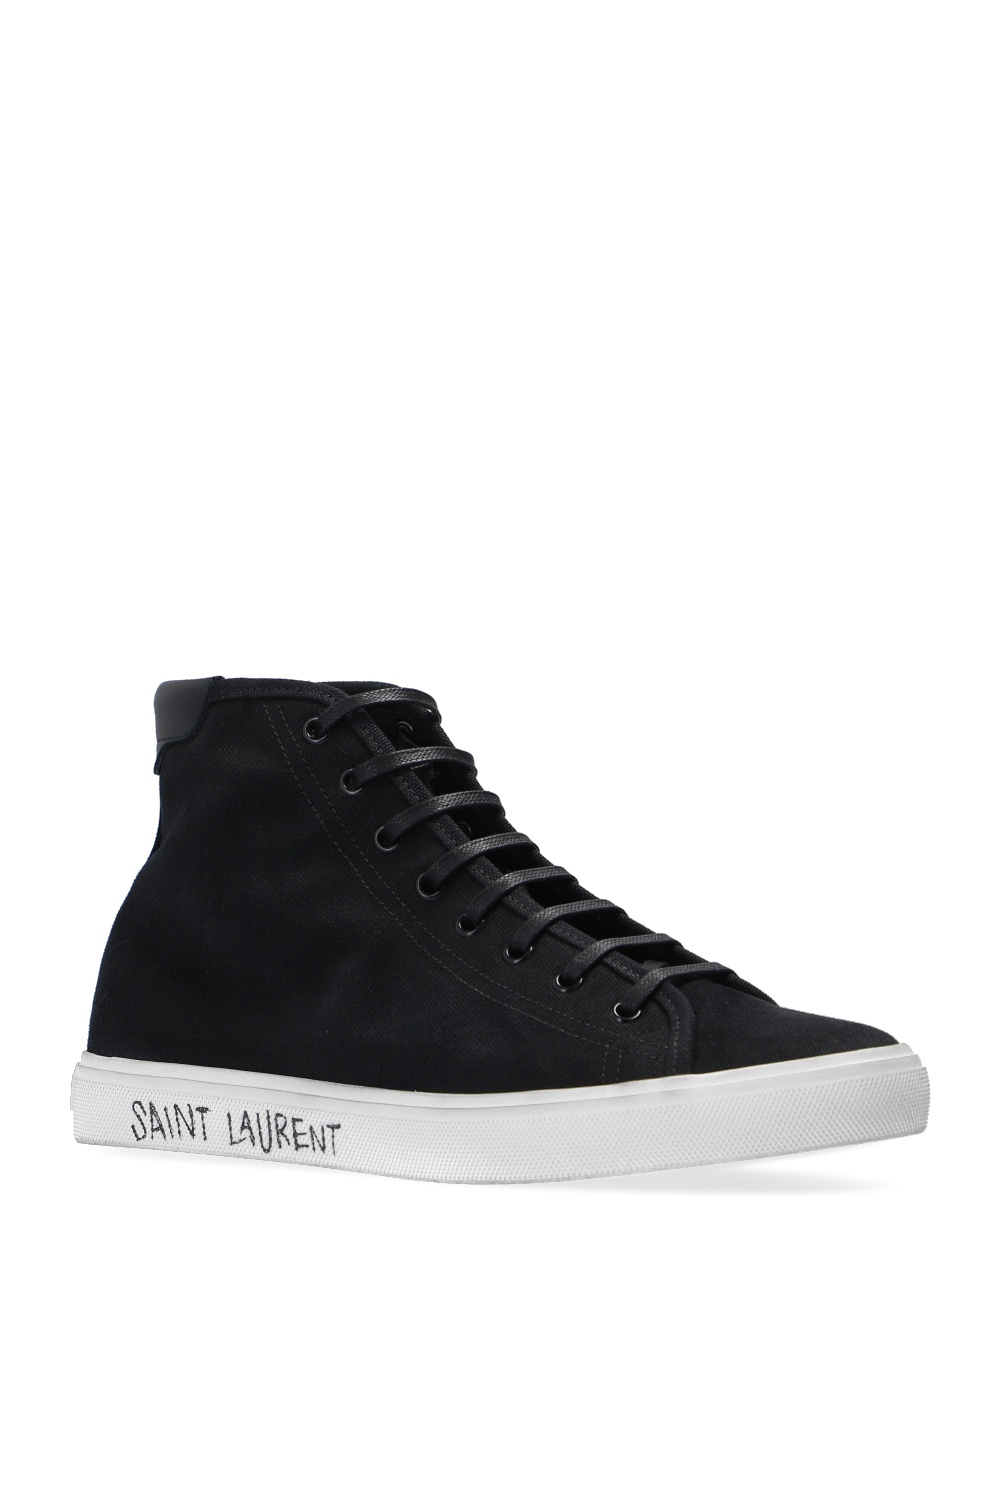 Saint Laurent Logo sneakers